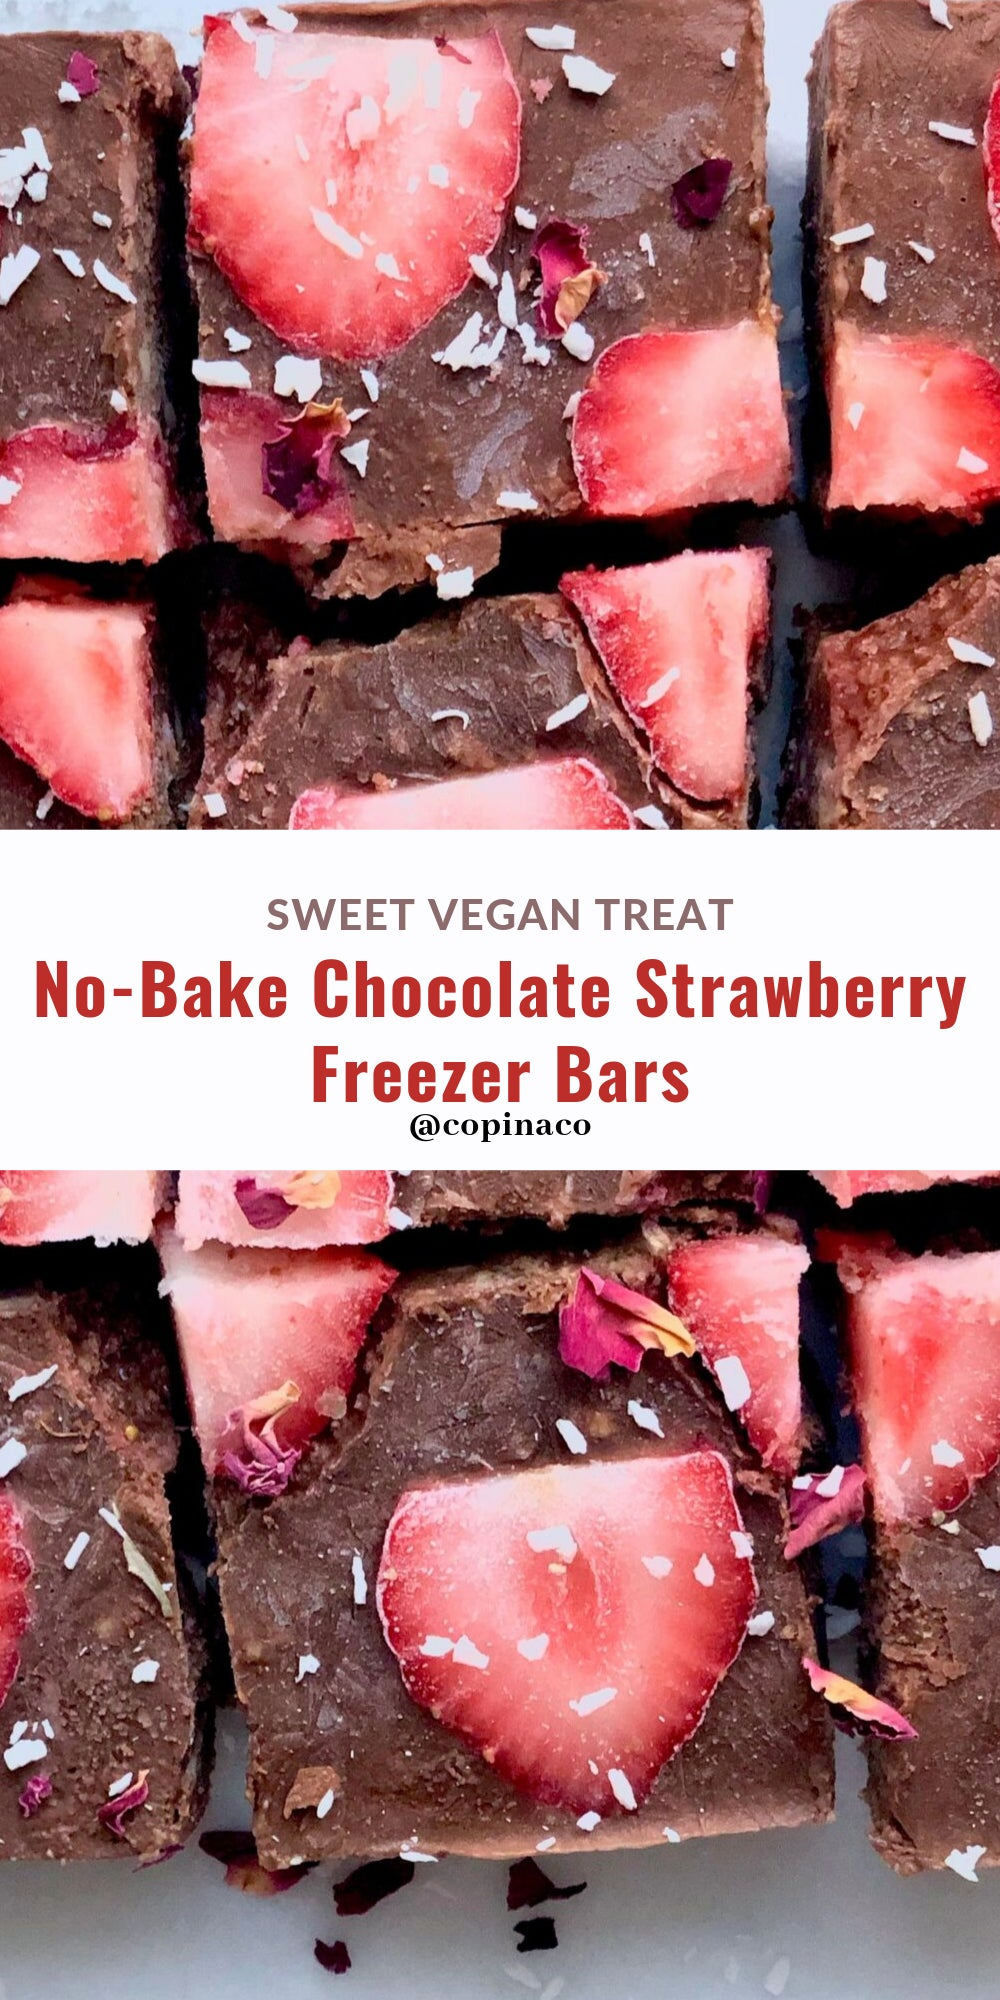 No-Bake Chocolate Strawberry Freezer Bars